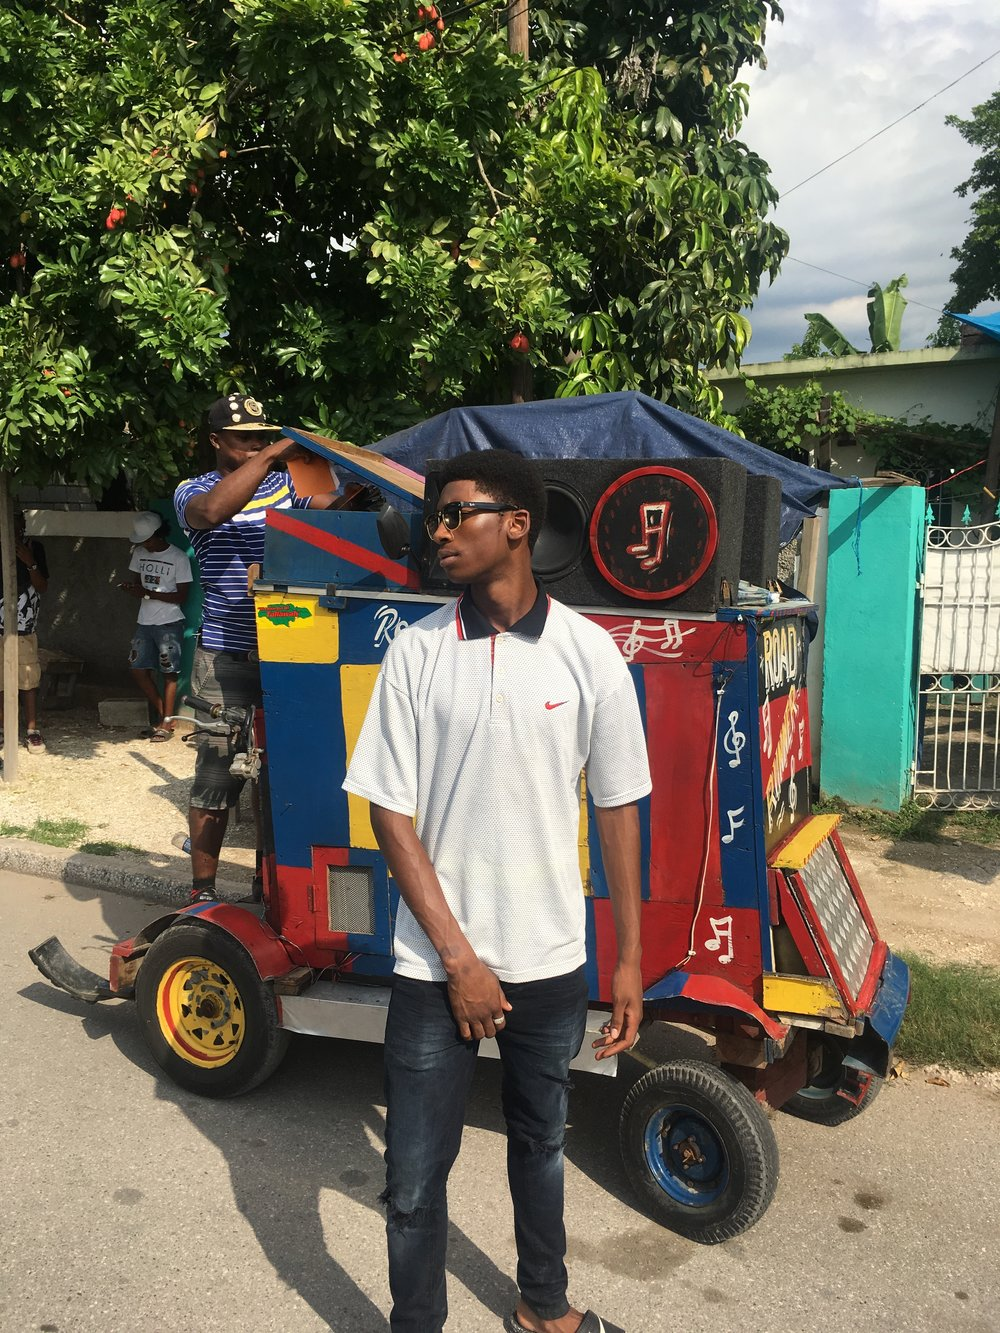 Blakie shooting 'Yard Man Vibe' video in Jamaica